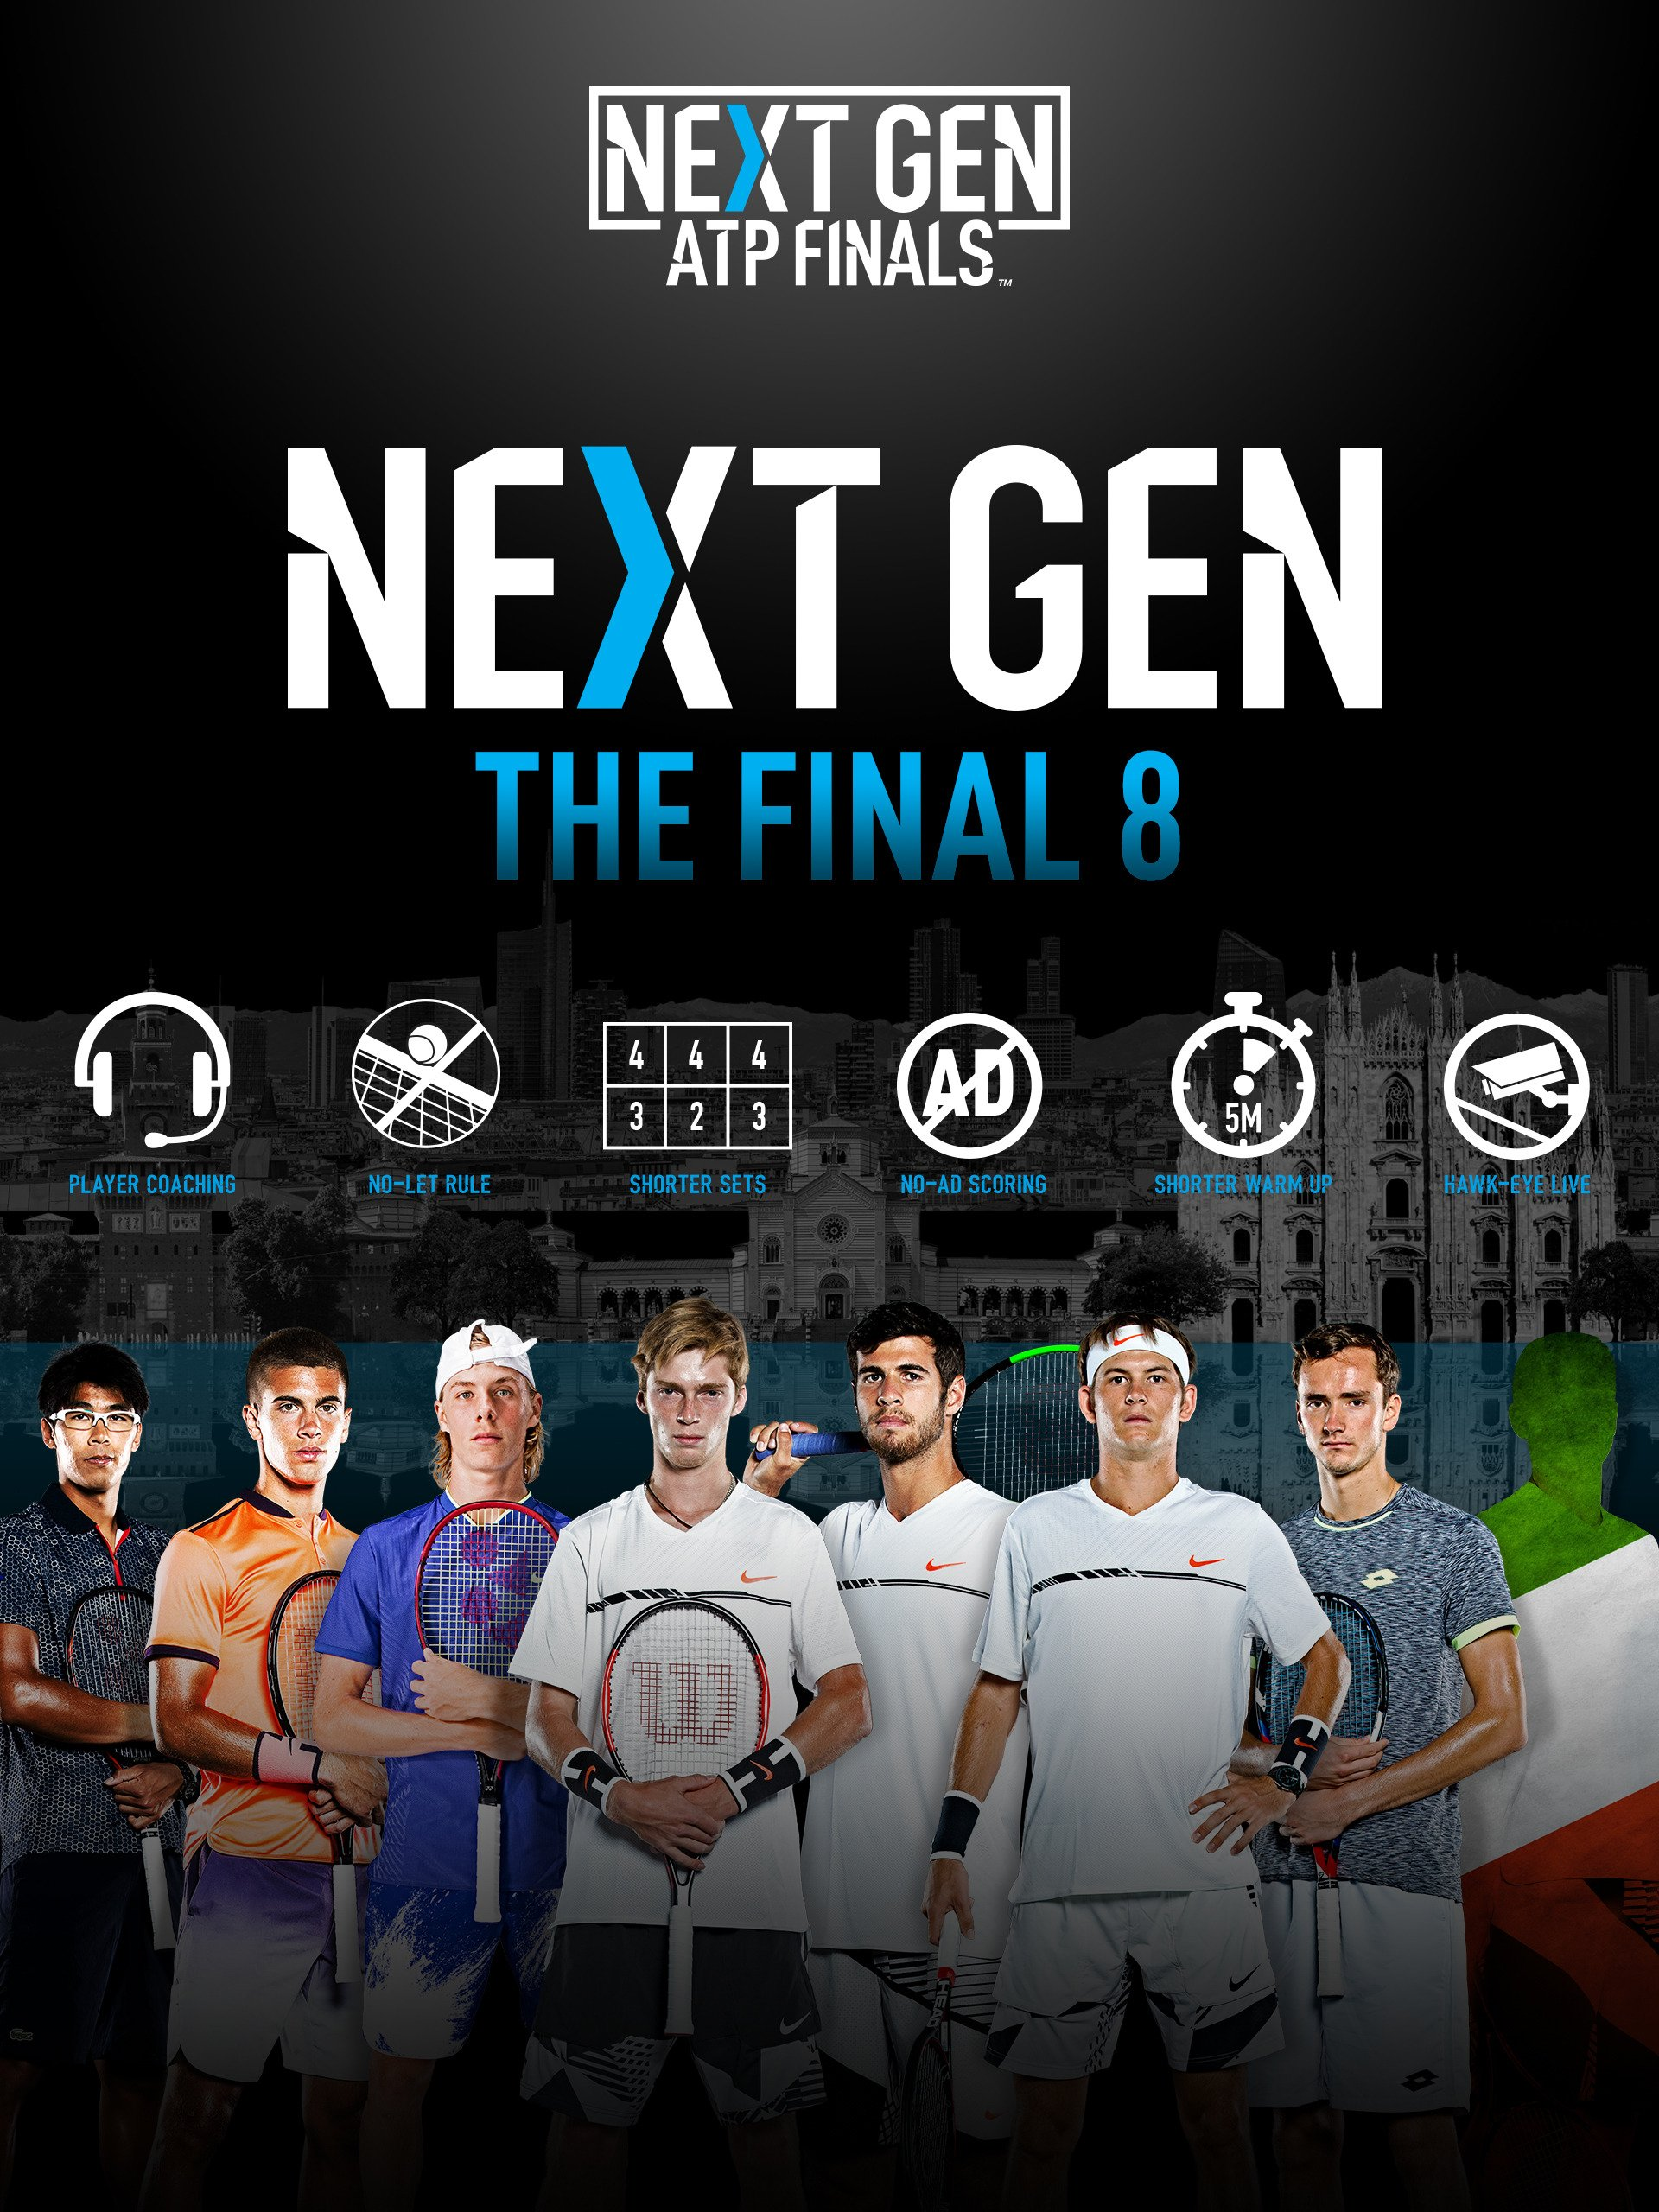 NEXT GEN THE FINAL 8